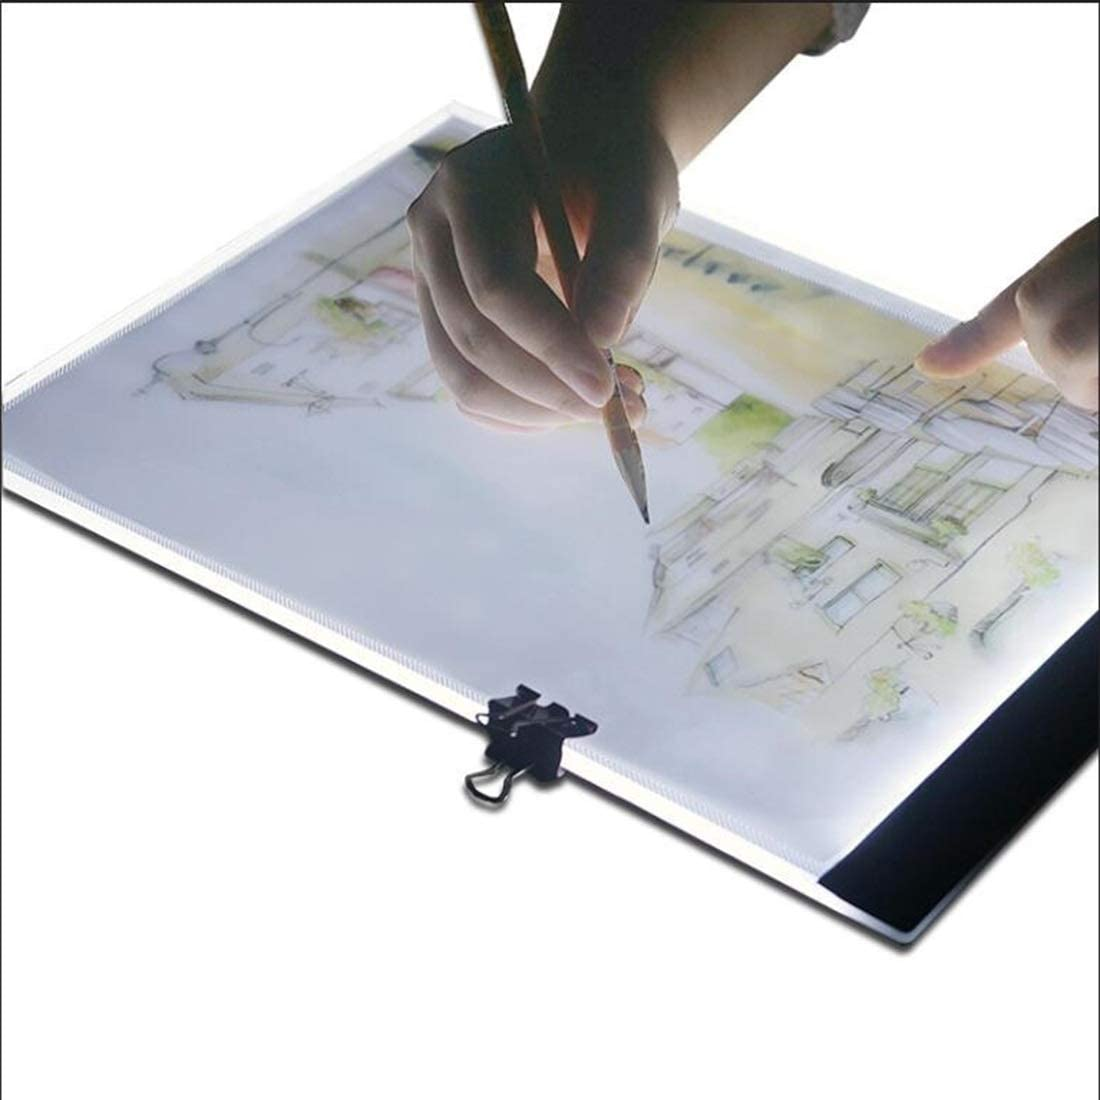 SHENGMASI Digital Drawing Board Ultra-Thin A4 Size Portable USB LED Artcraft Tracing Light Box Copy Board Brightness Control for Artists Drawing Sketching Animation and X-ray Viewing